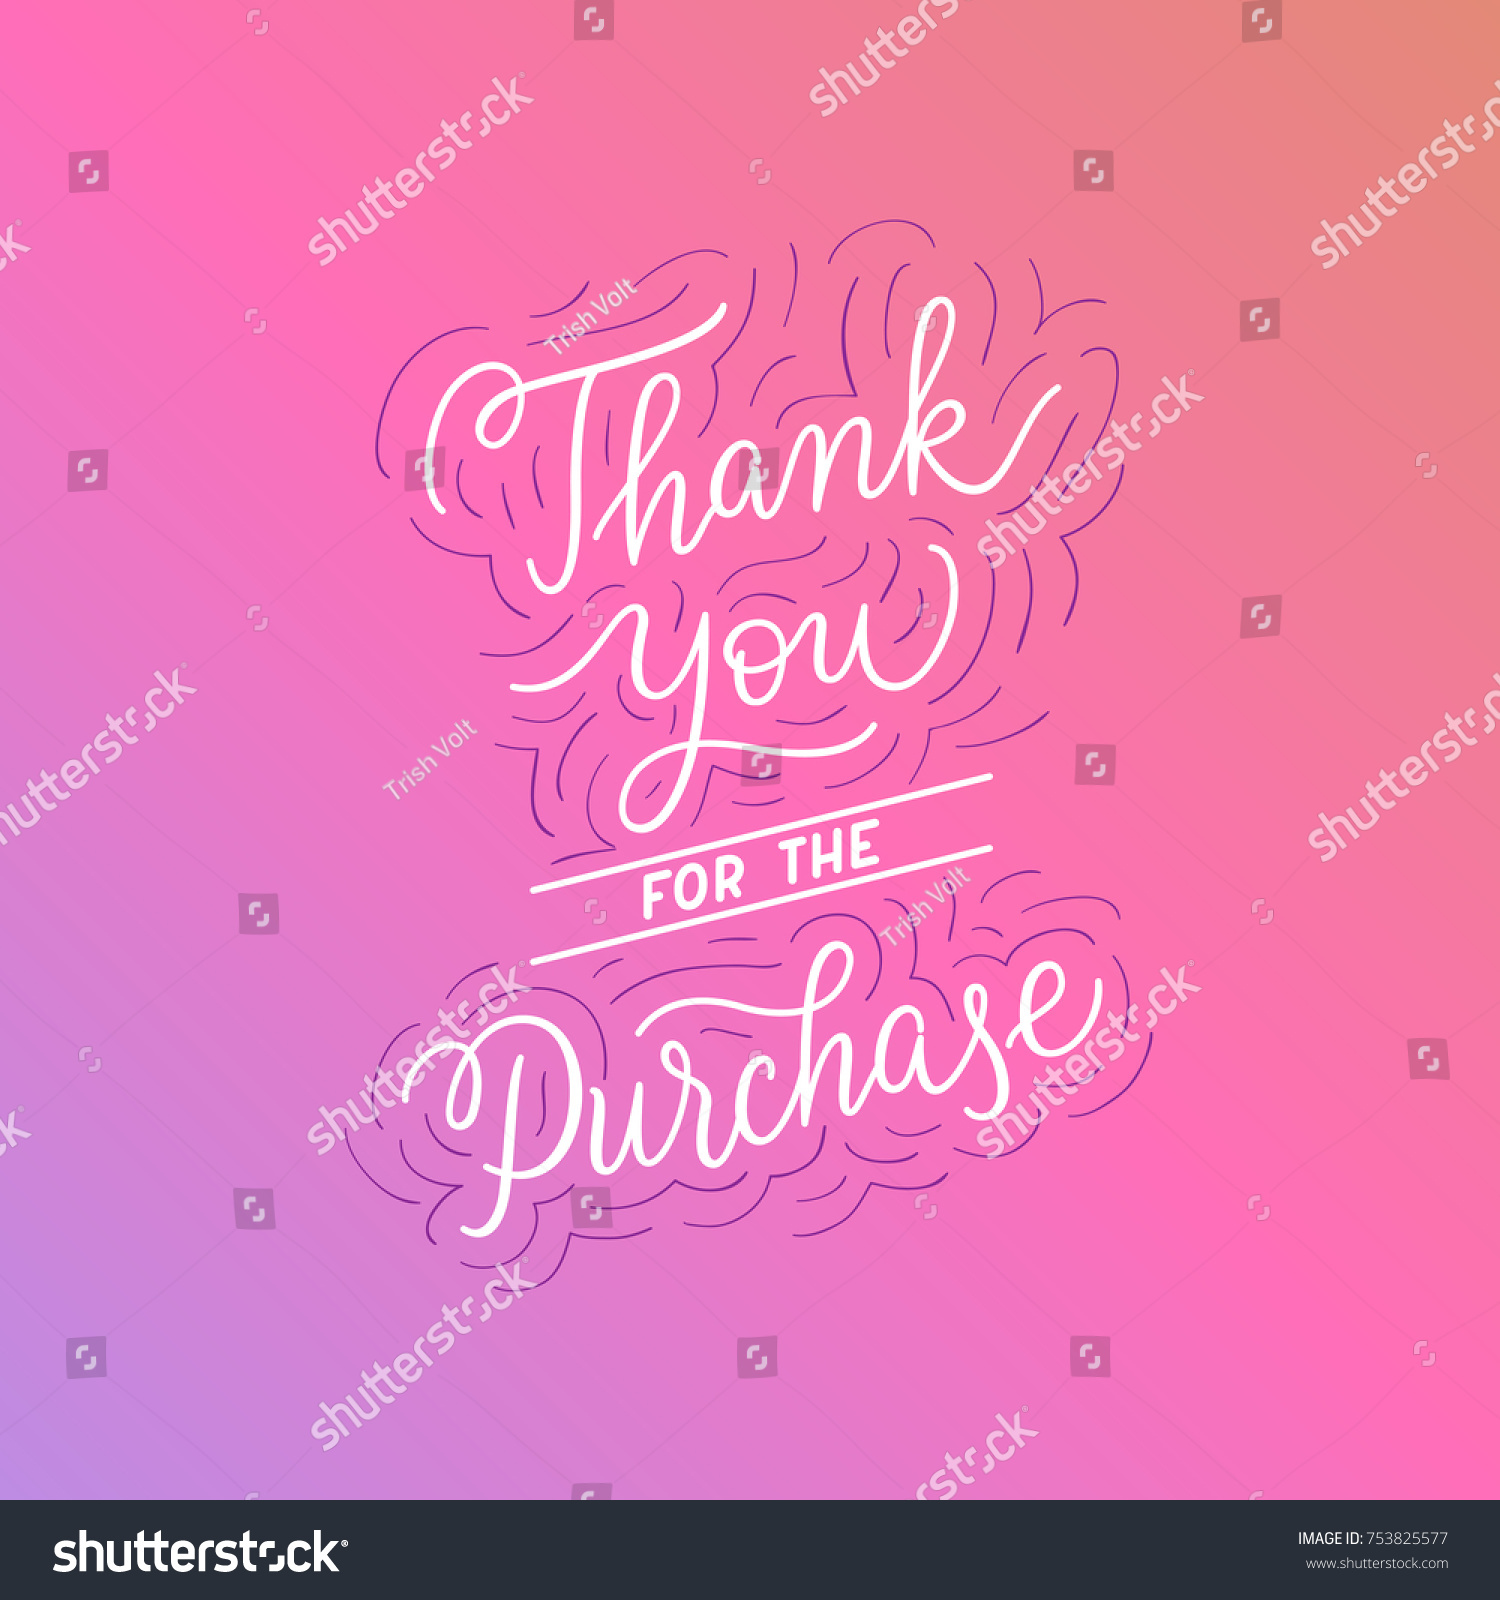 Thank you purchase perfect customer service stock vector 753825577 thank you for the purchase perfect for customer service after purchase email sticker kristyandbryce Choice Image